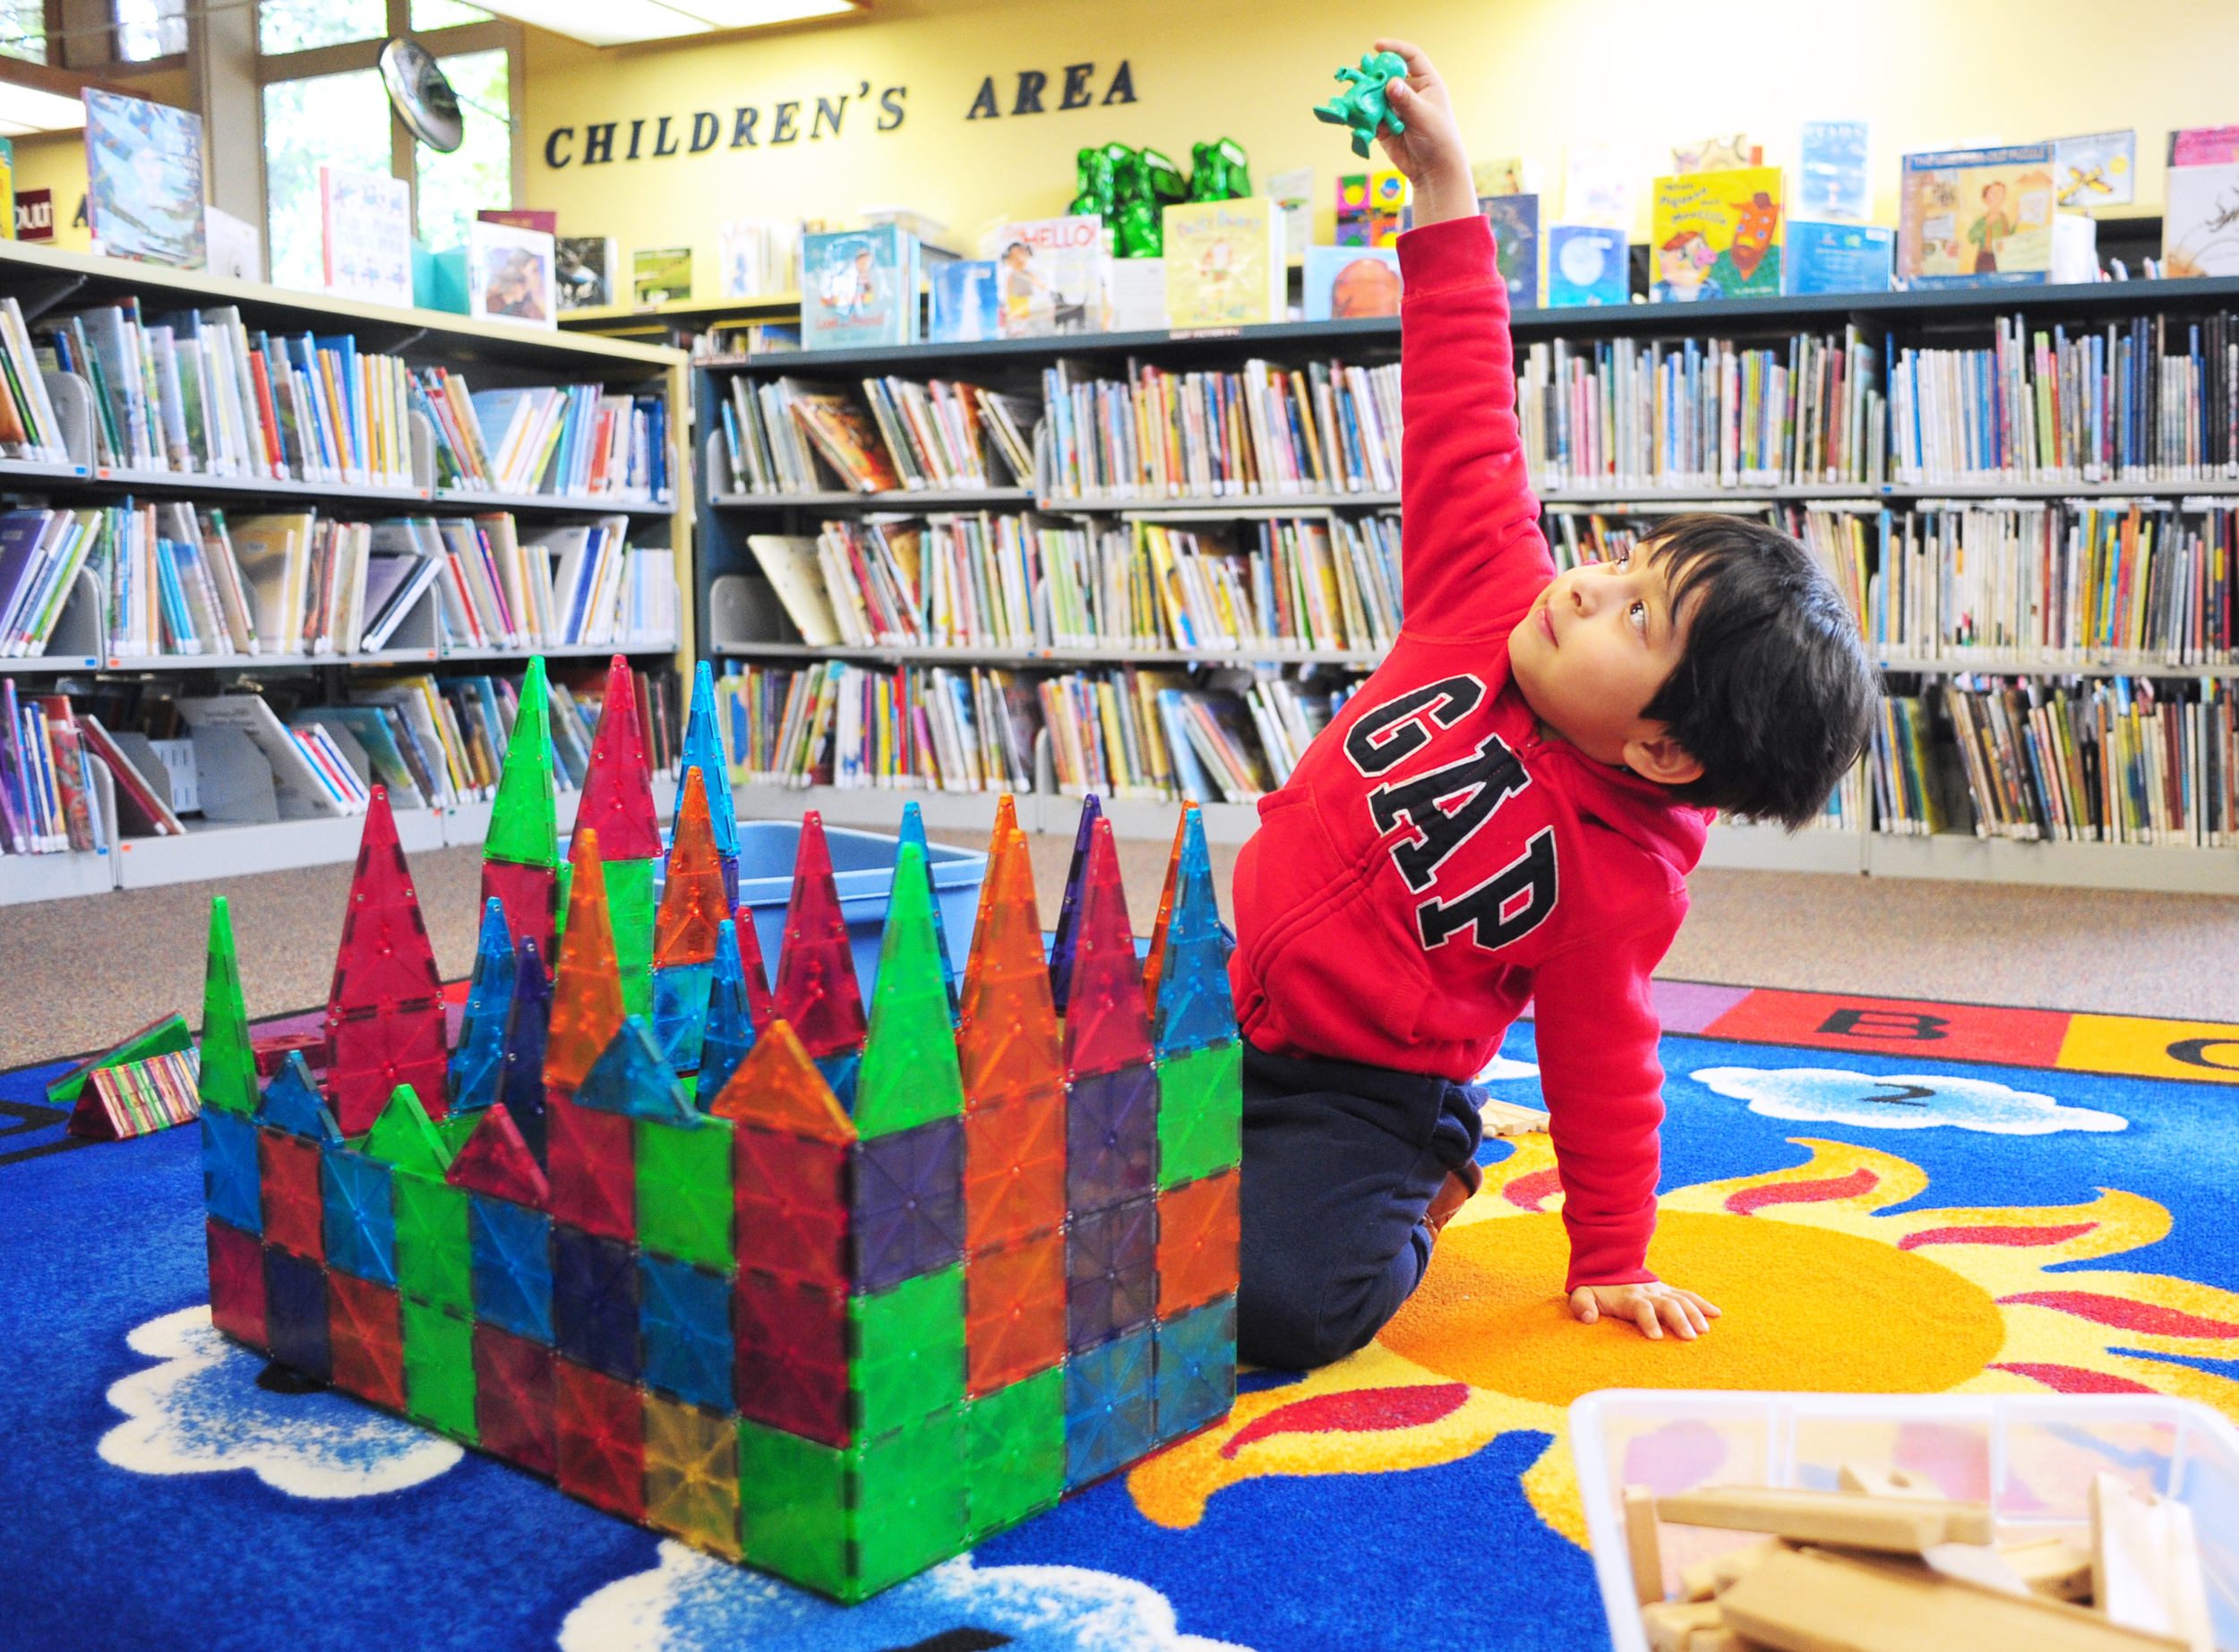 svh-20170510-feature-legos.at.library02 copy.jpg